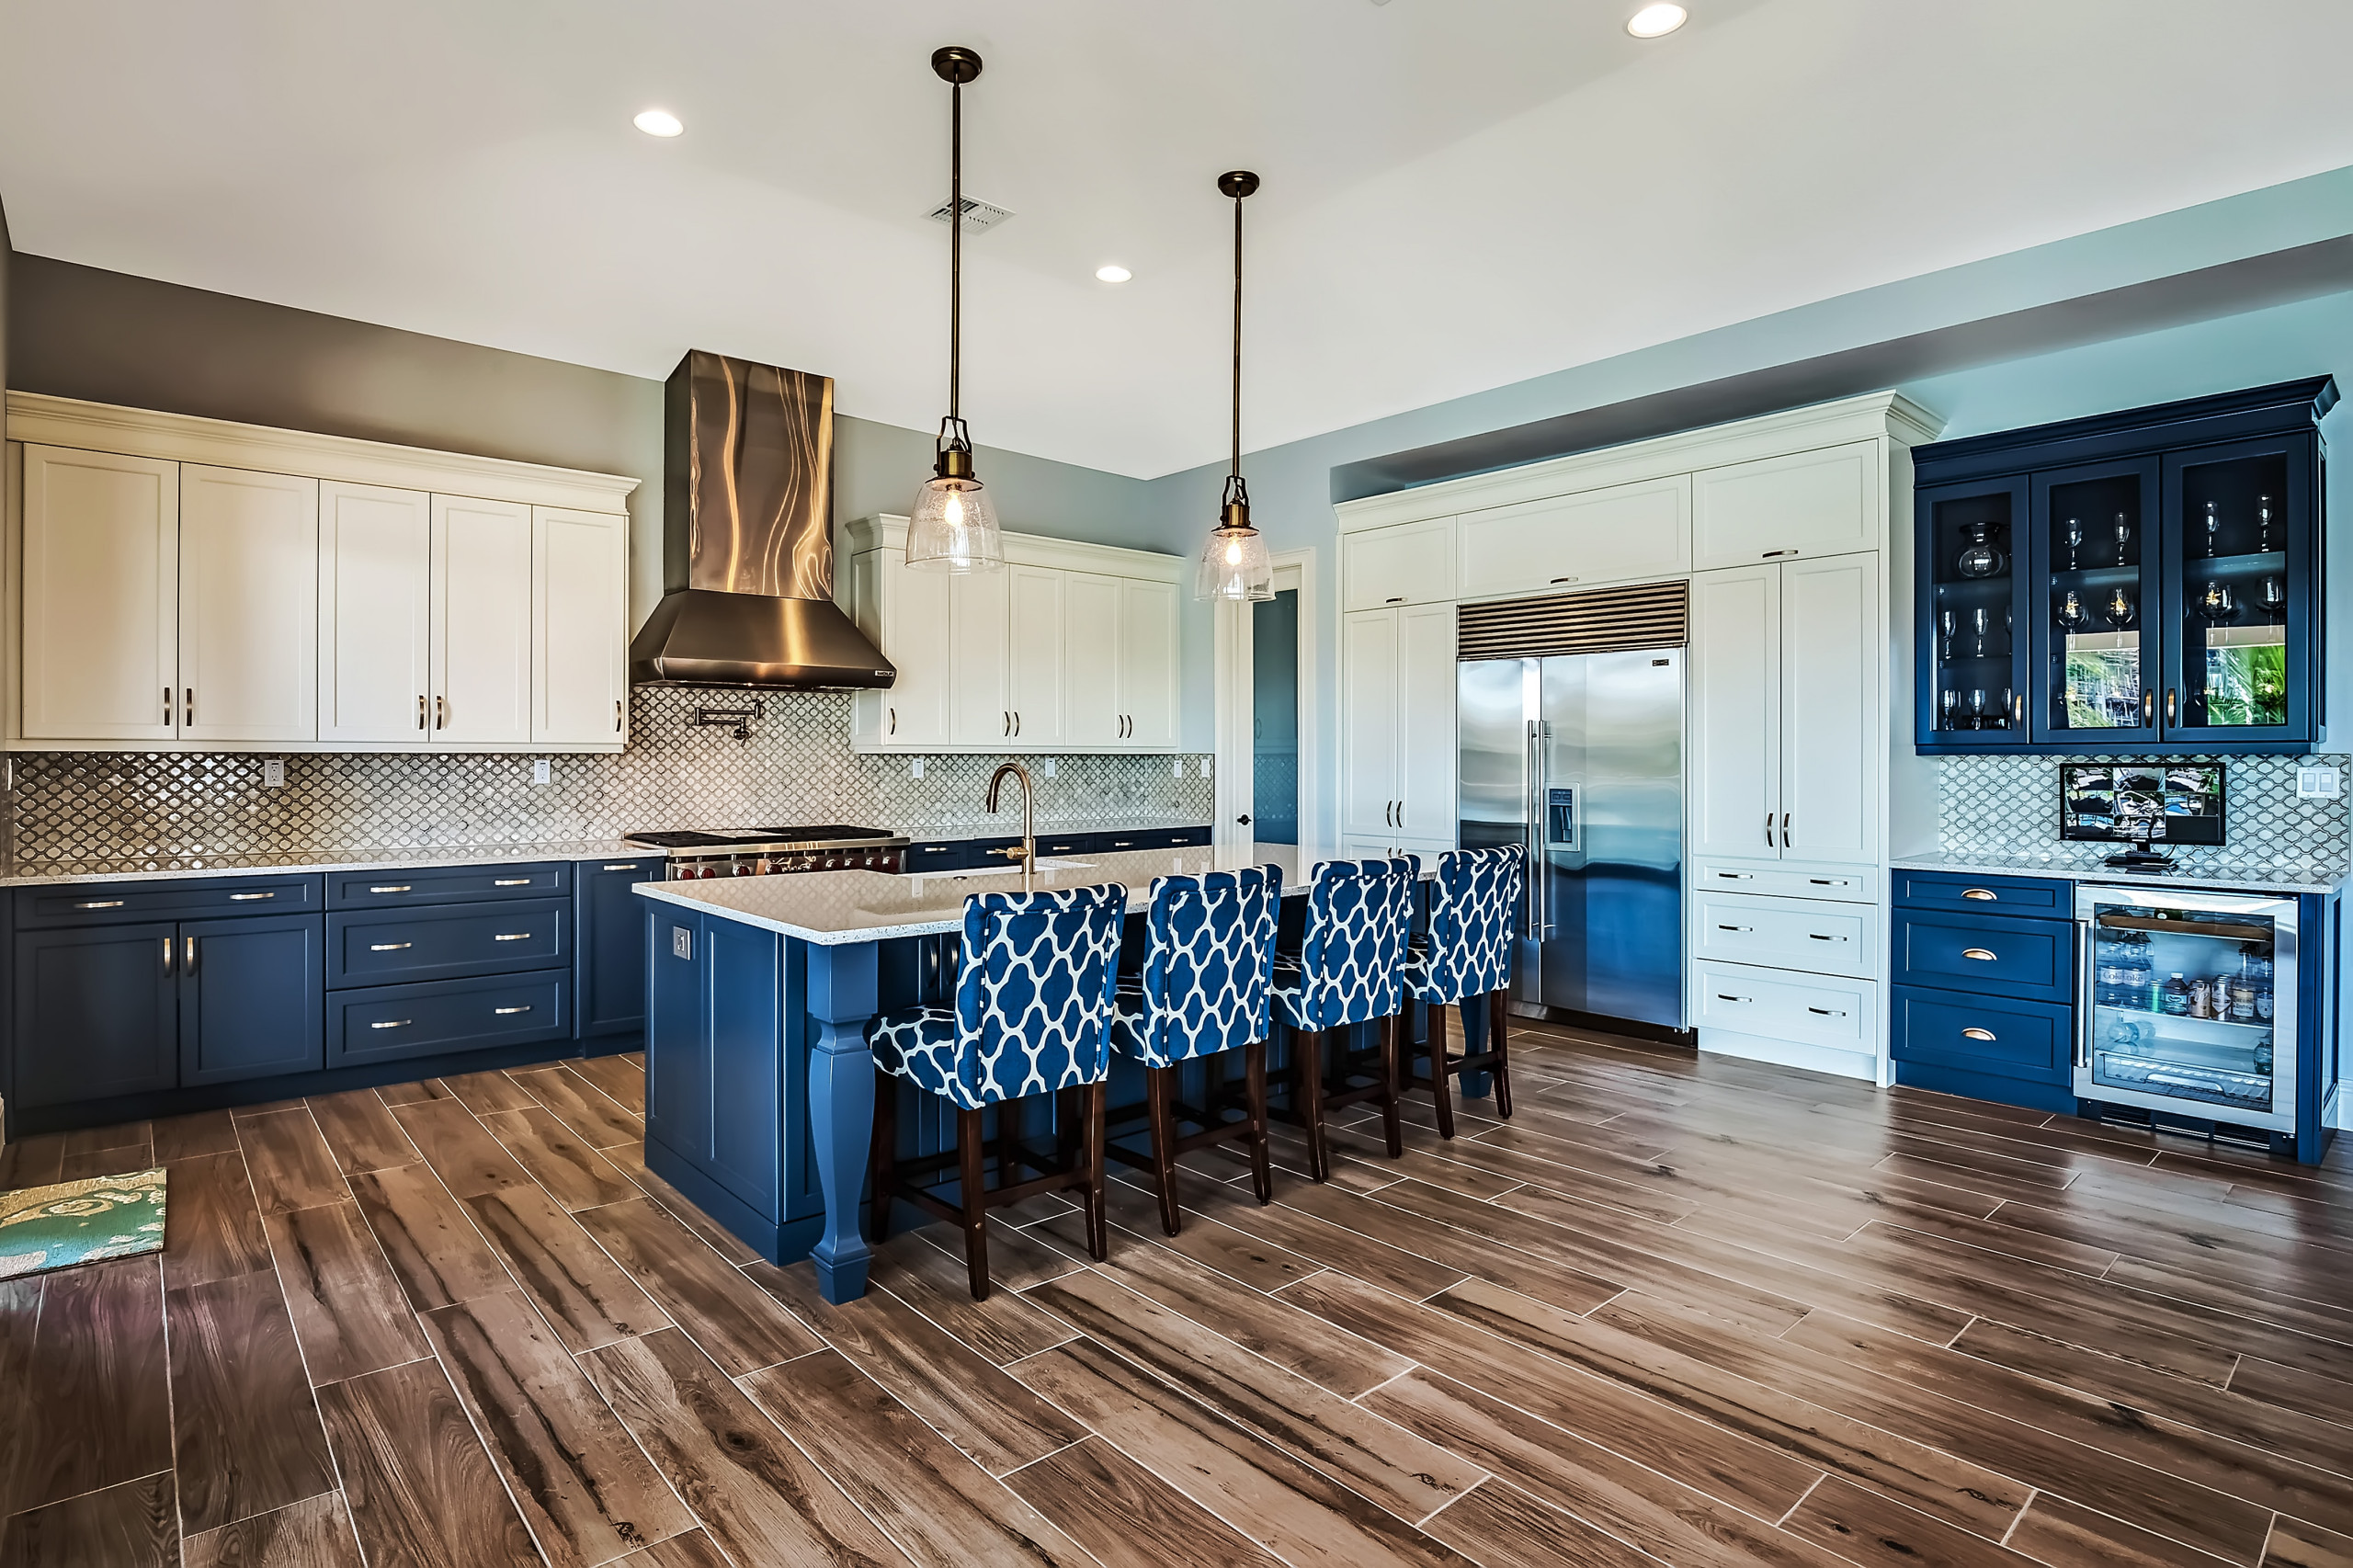 75 Beautiful Kitchen With Recycled Glass Countertops And Multicolored Backsplash Pictures Ideas November 2020 Houzz